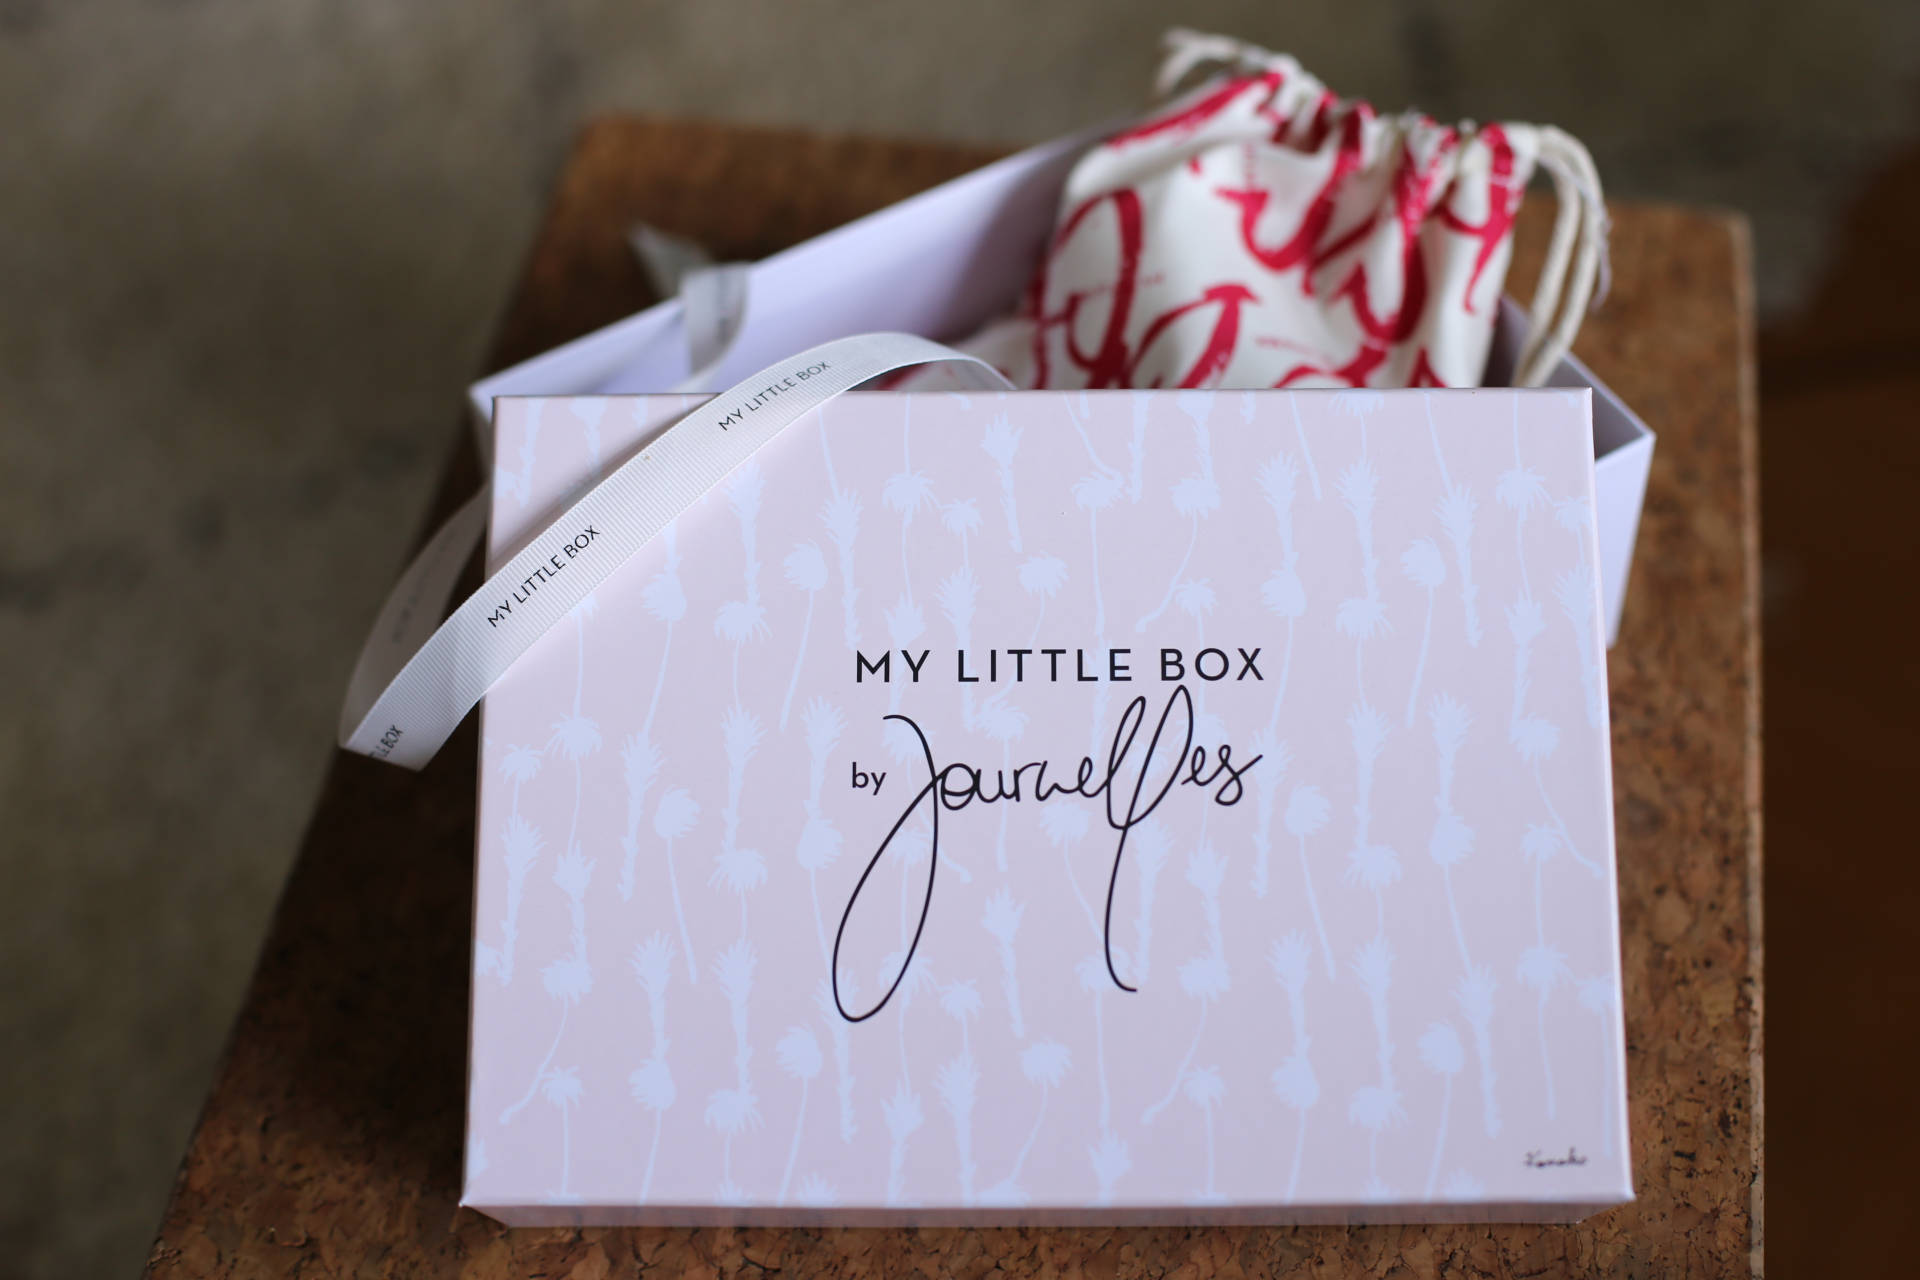 mylittlebox-journelles3